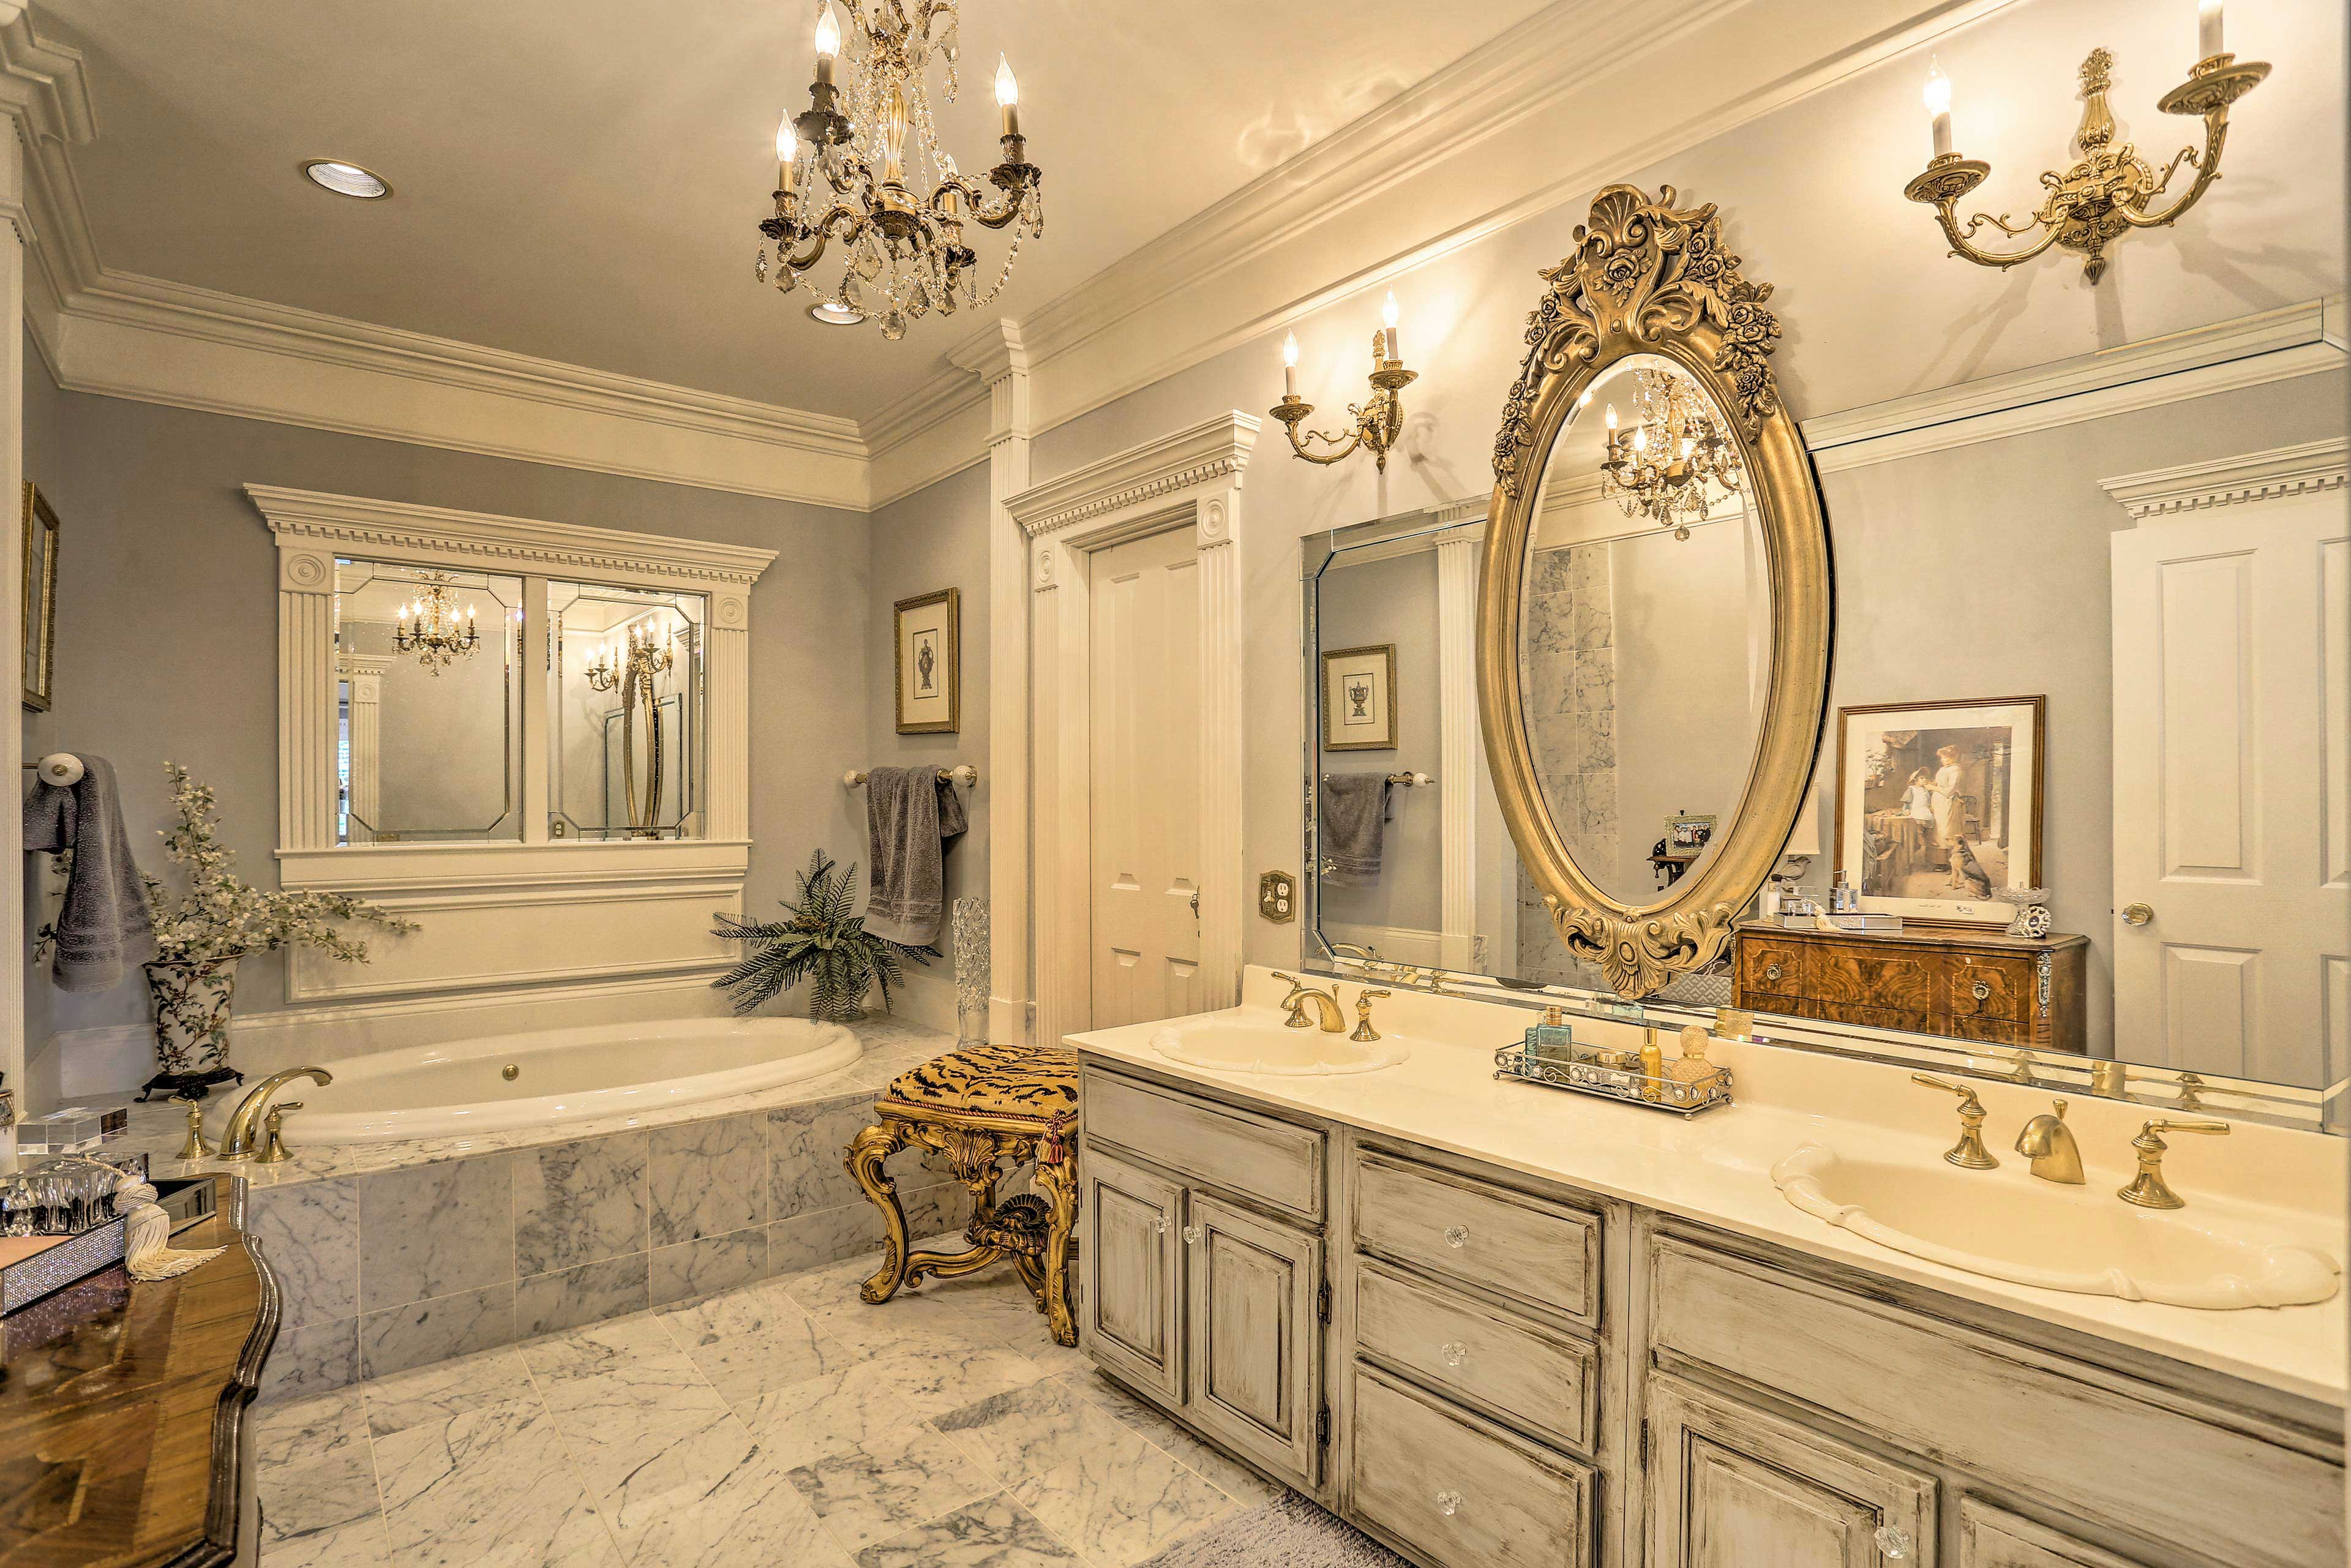 This bathroom features a huge vanity to get ready in the morning.